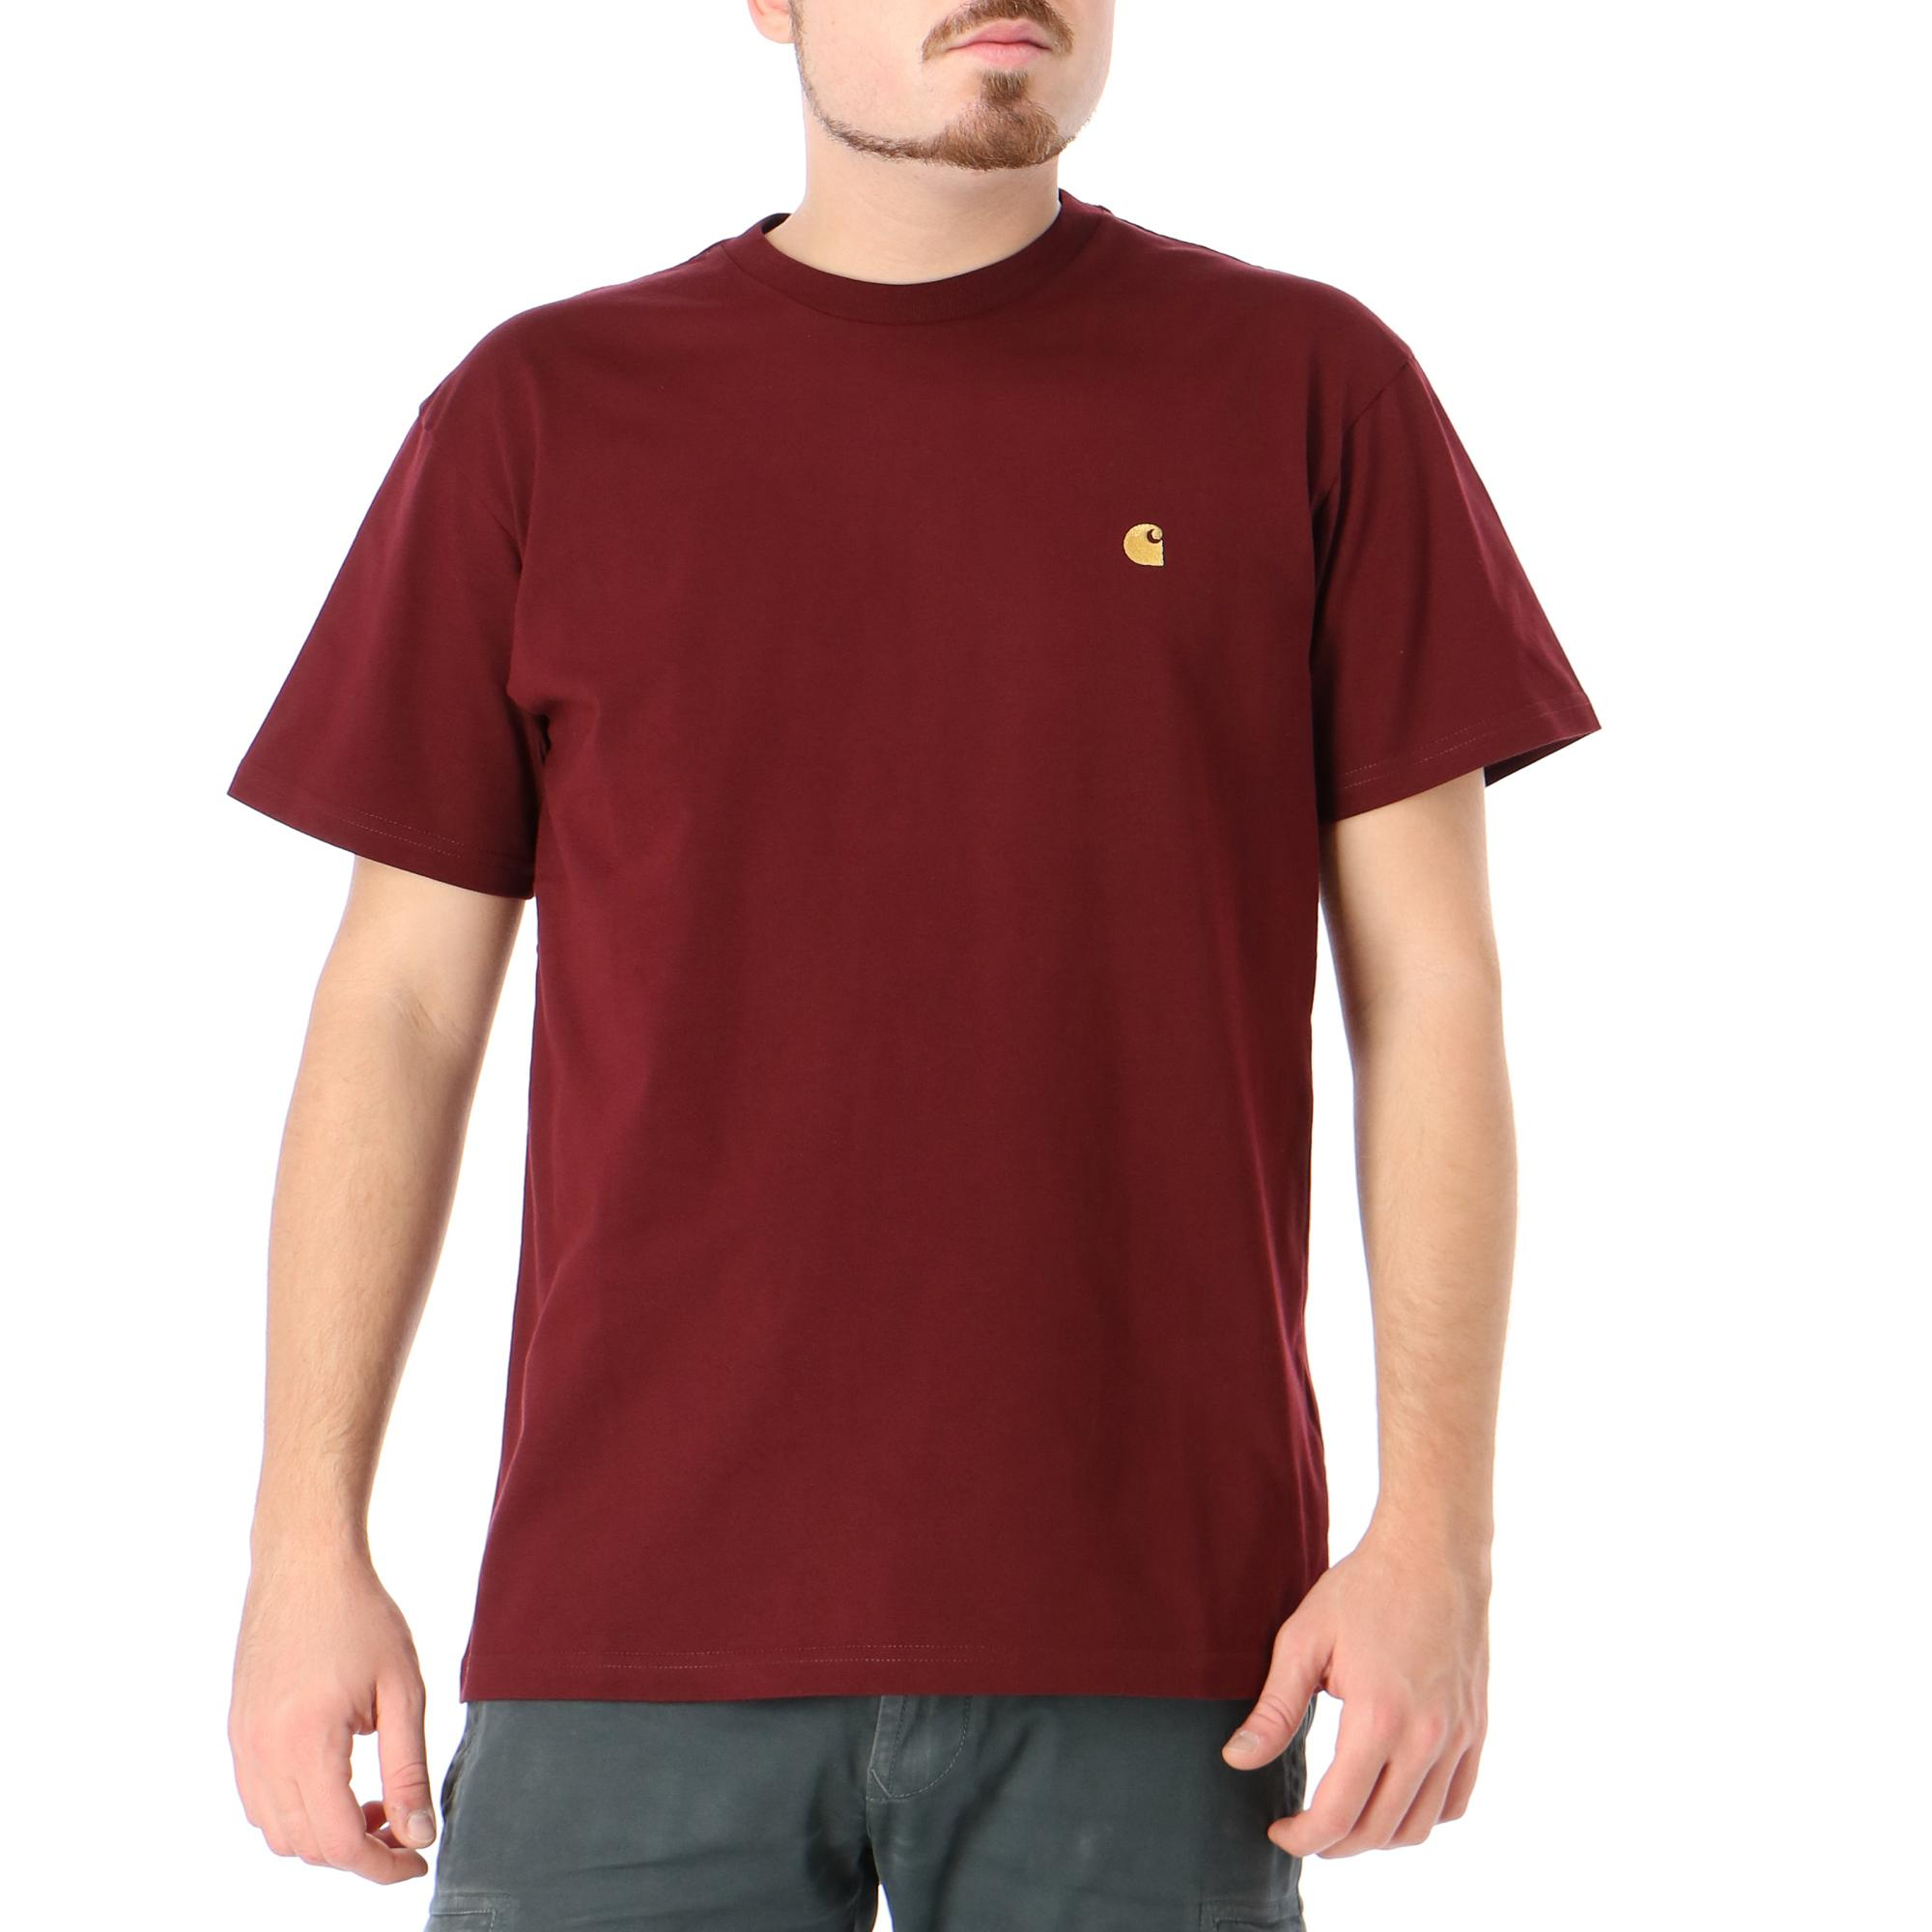 Carhartt S/s Chase T-shirt Bordeaux gold